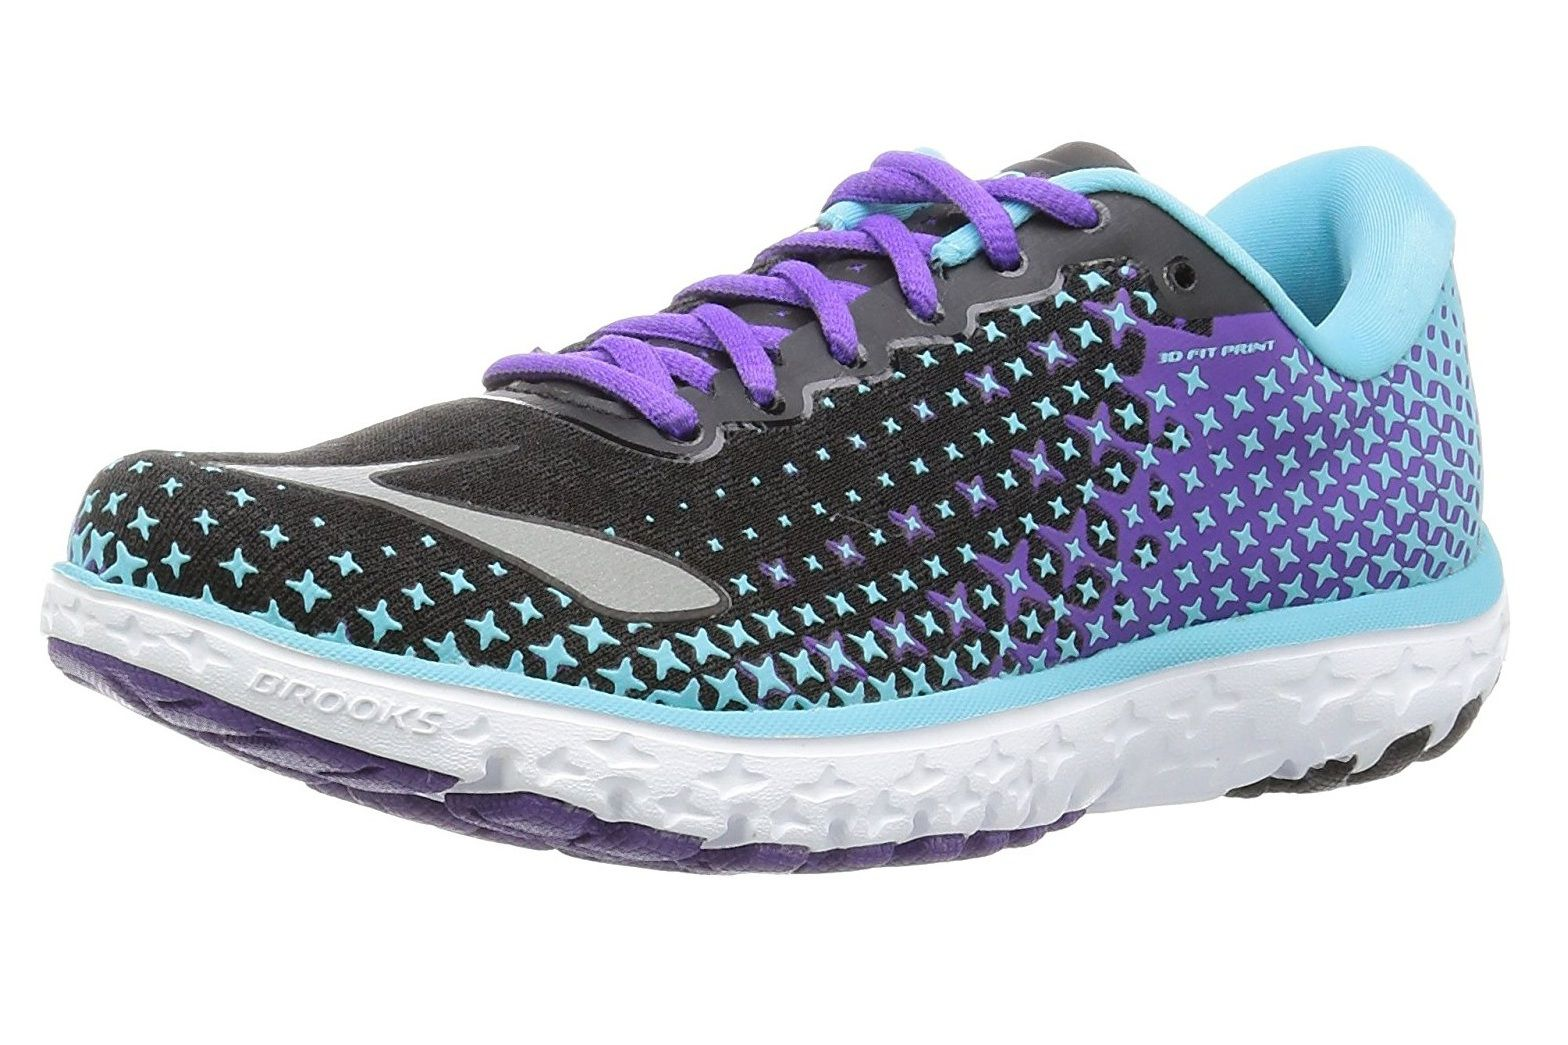 5729d324925 The 7 Best Performance Walking Shoes of 2019